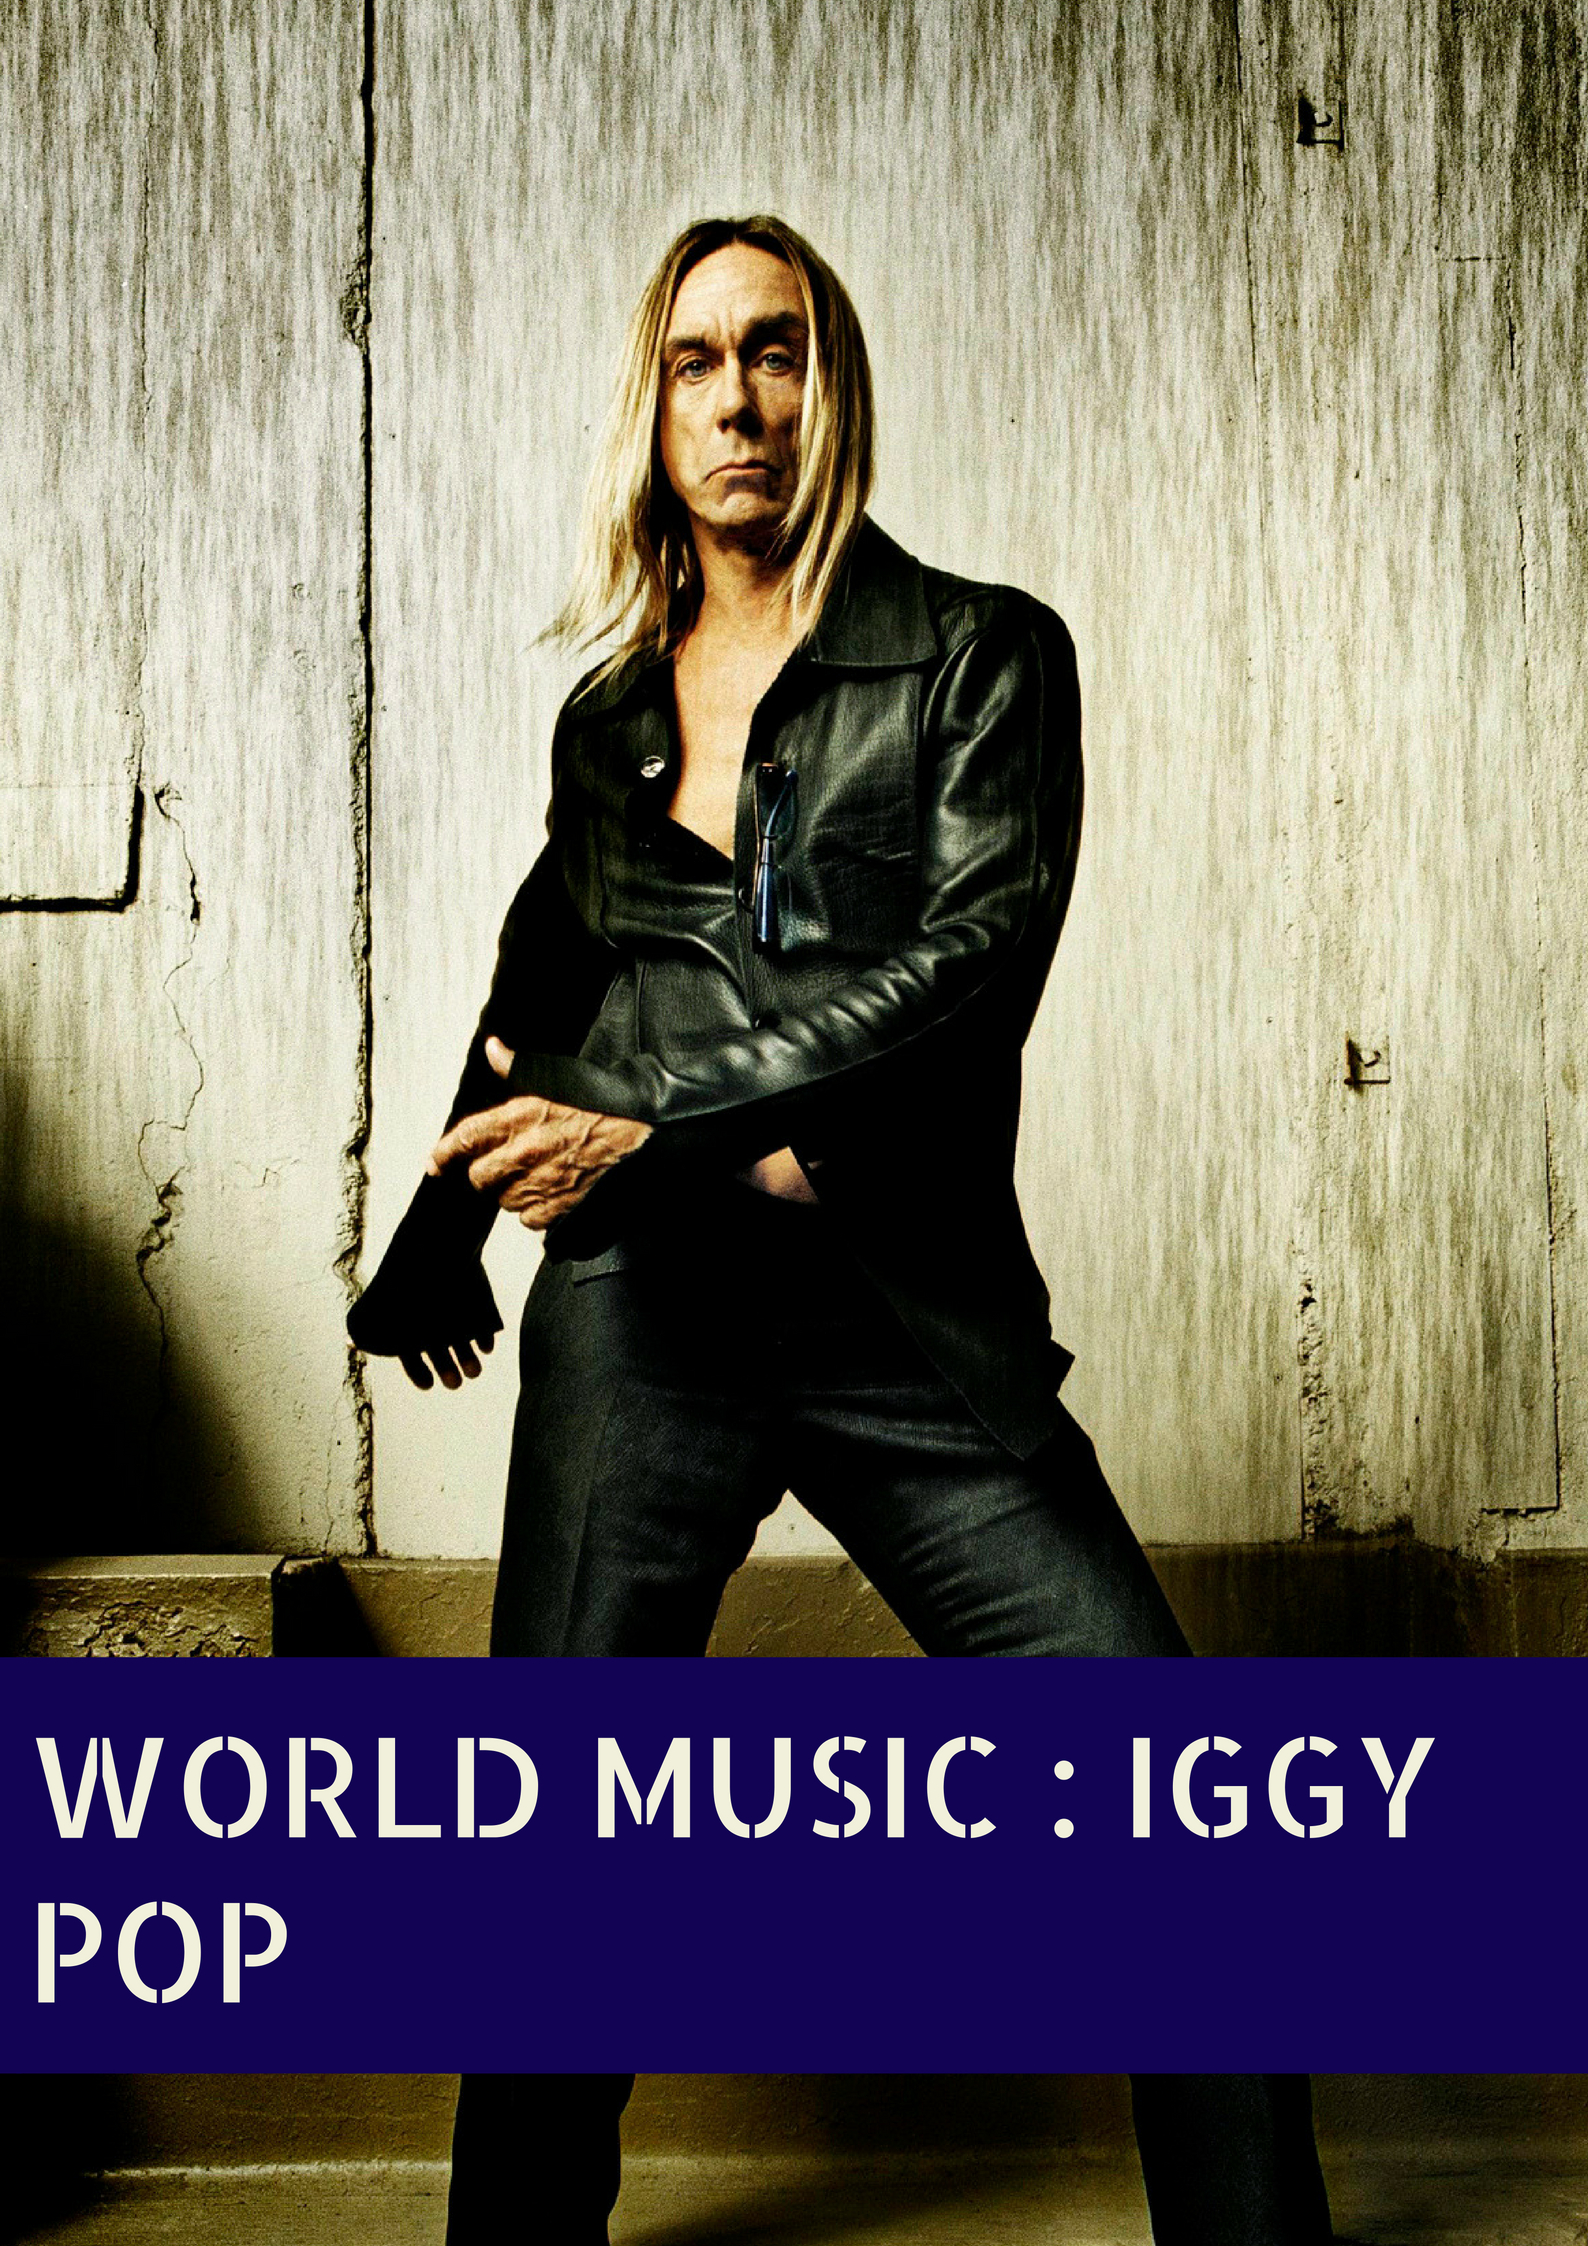 World music : Iggy Pop